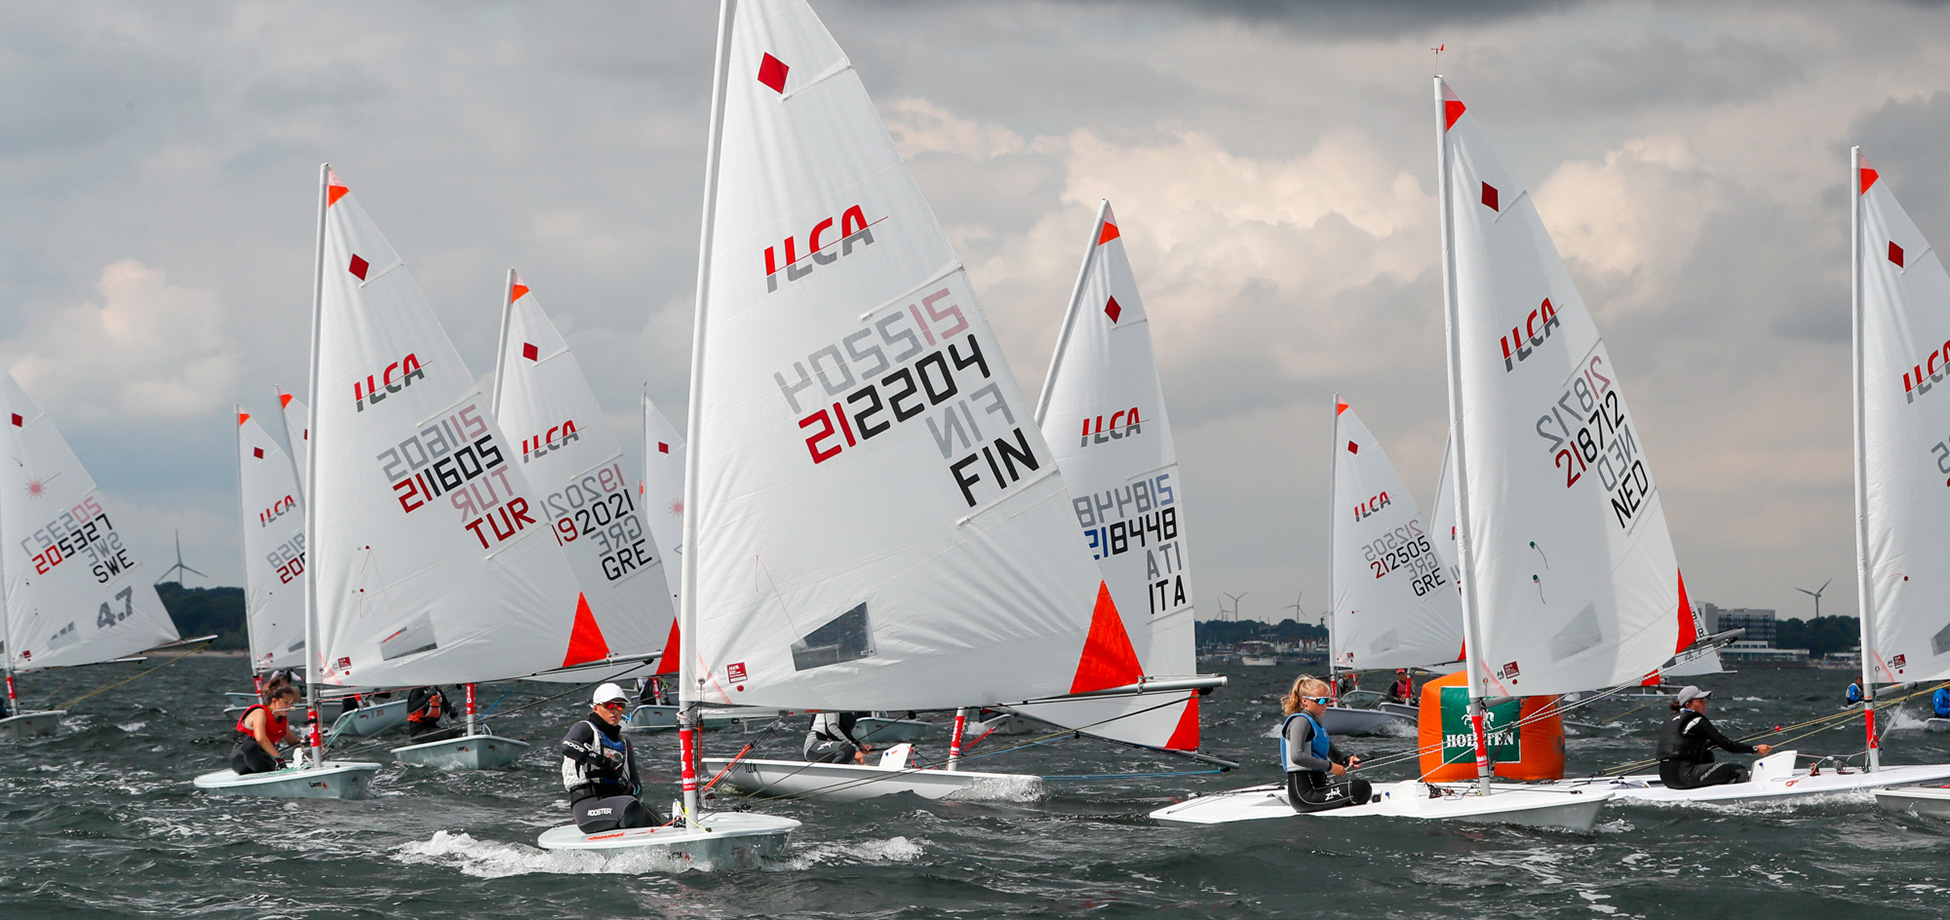 race day 4 eurilca 4.7 youth europeans